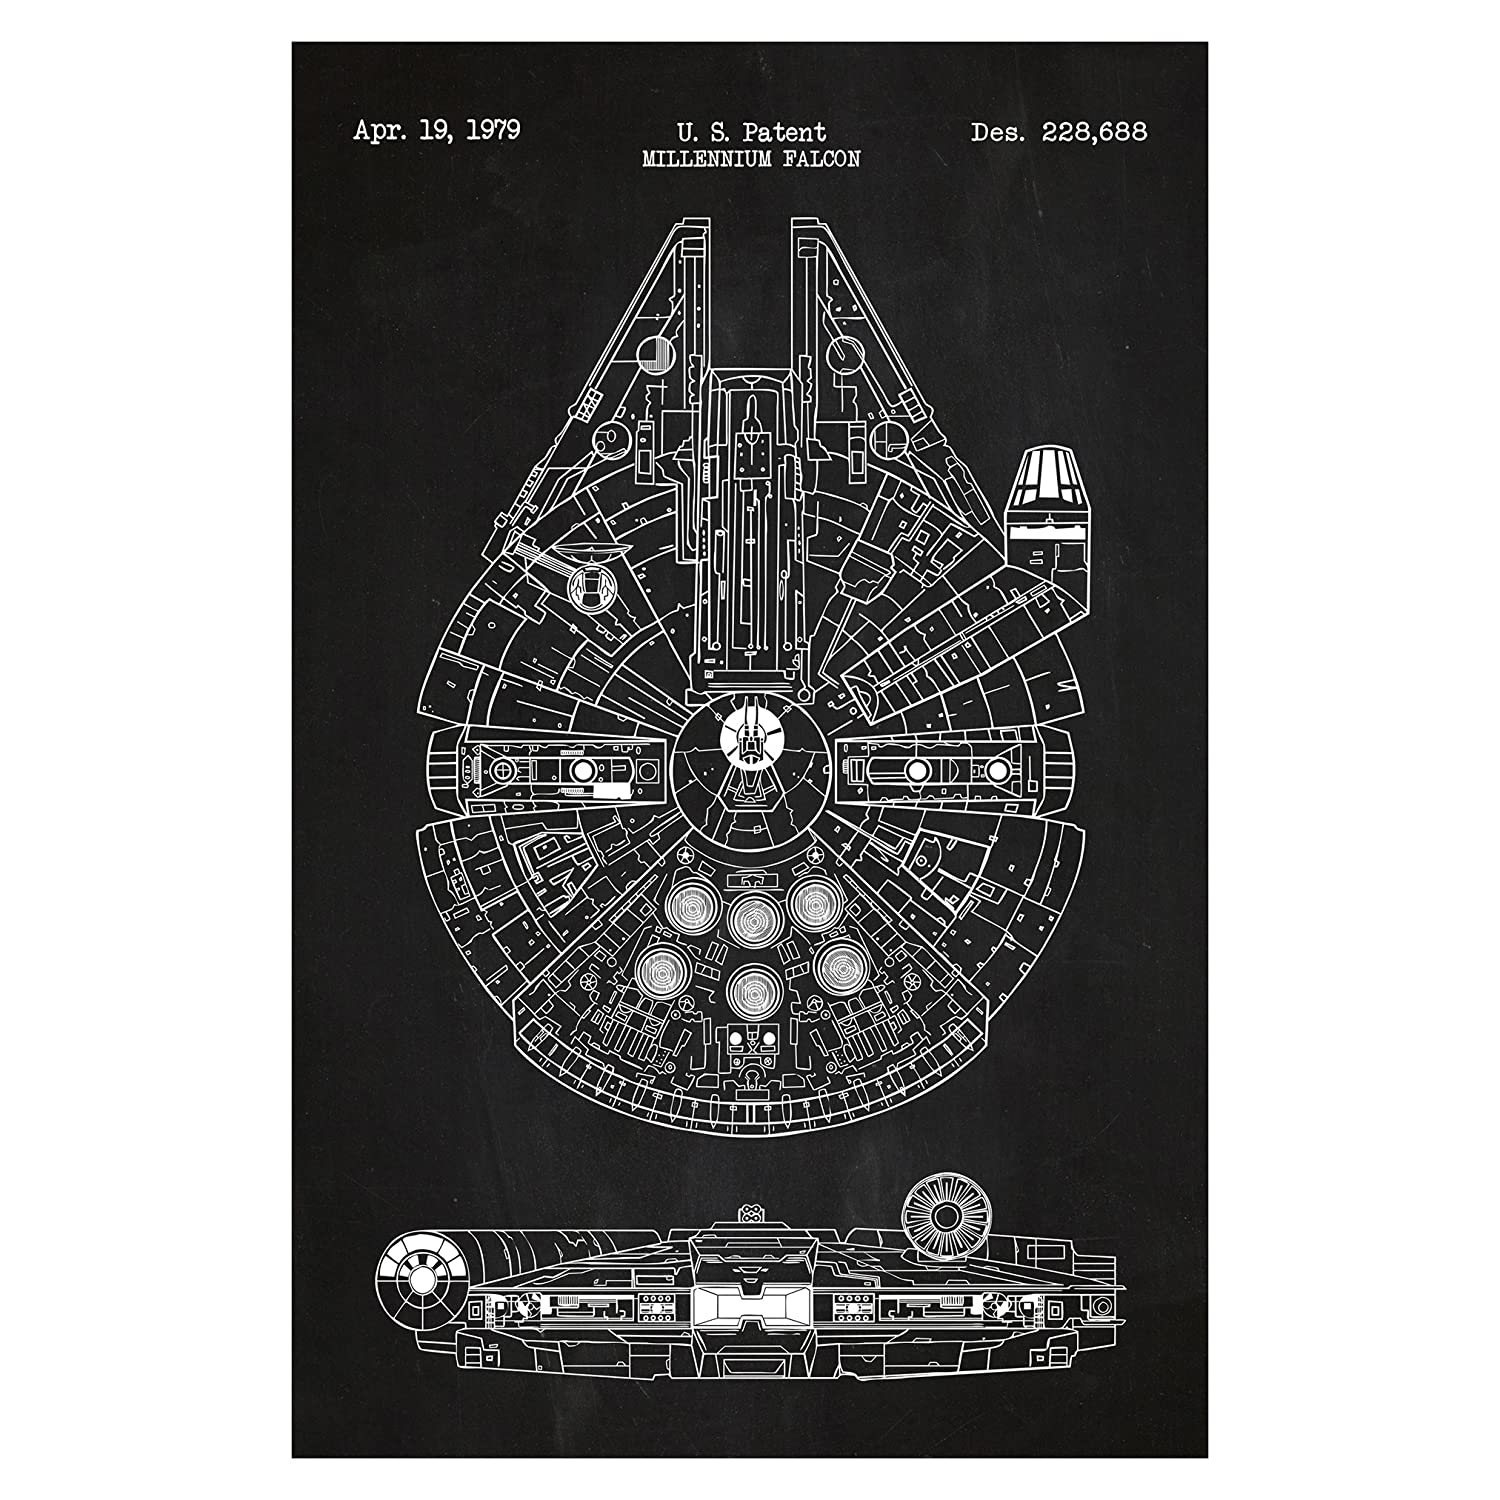 Inked and Screened Star Wars Assorted Design Patent Art Poster 11 x 17 inch Silk Screen Prints Millennium Falcon - Chalkboard